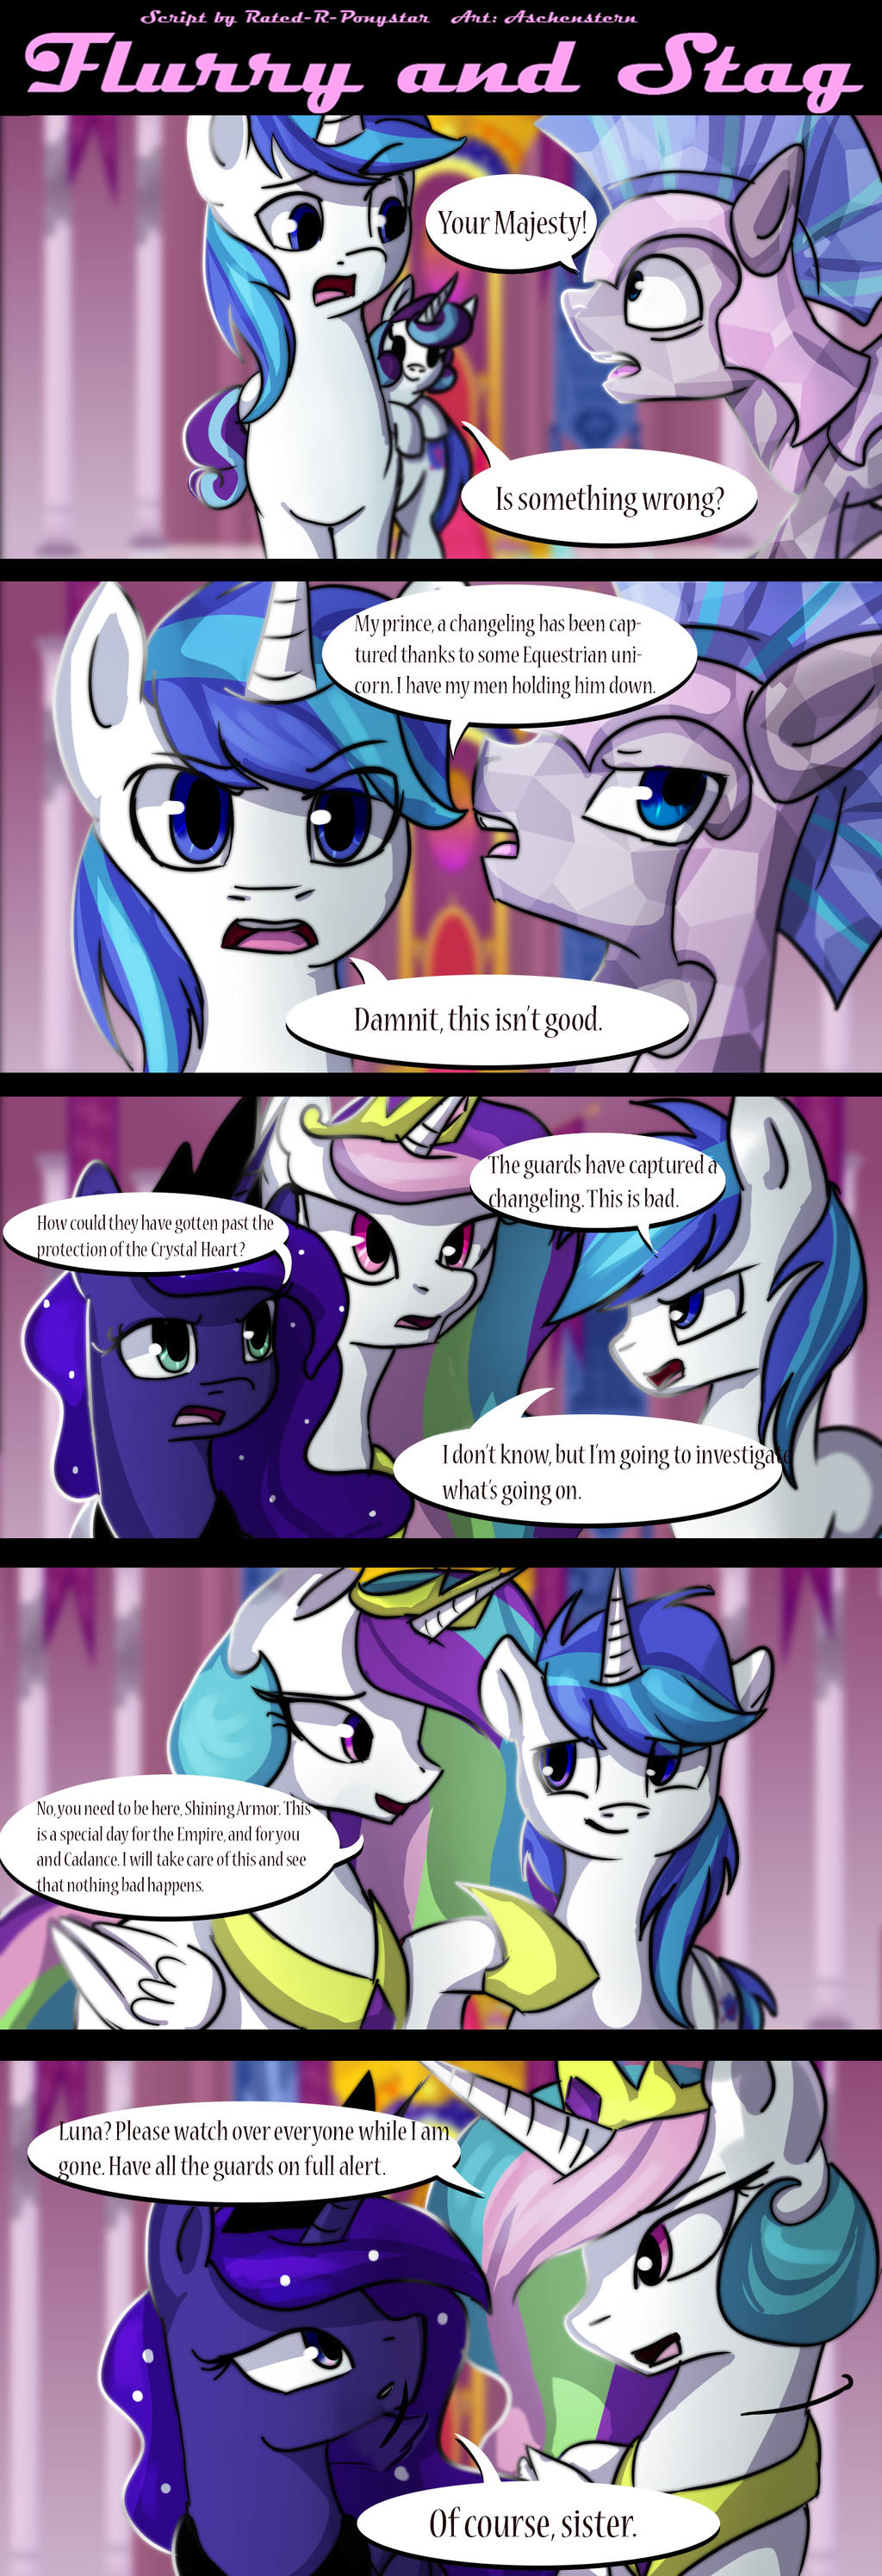 Flurry and Stag: Chapter 1 Page 6